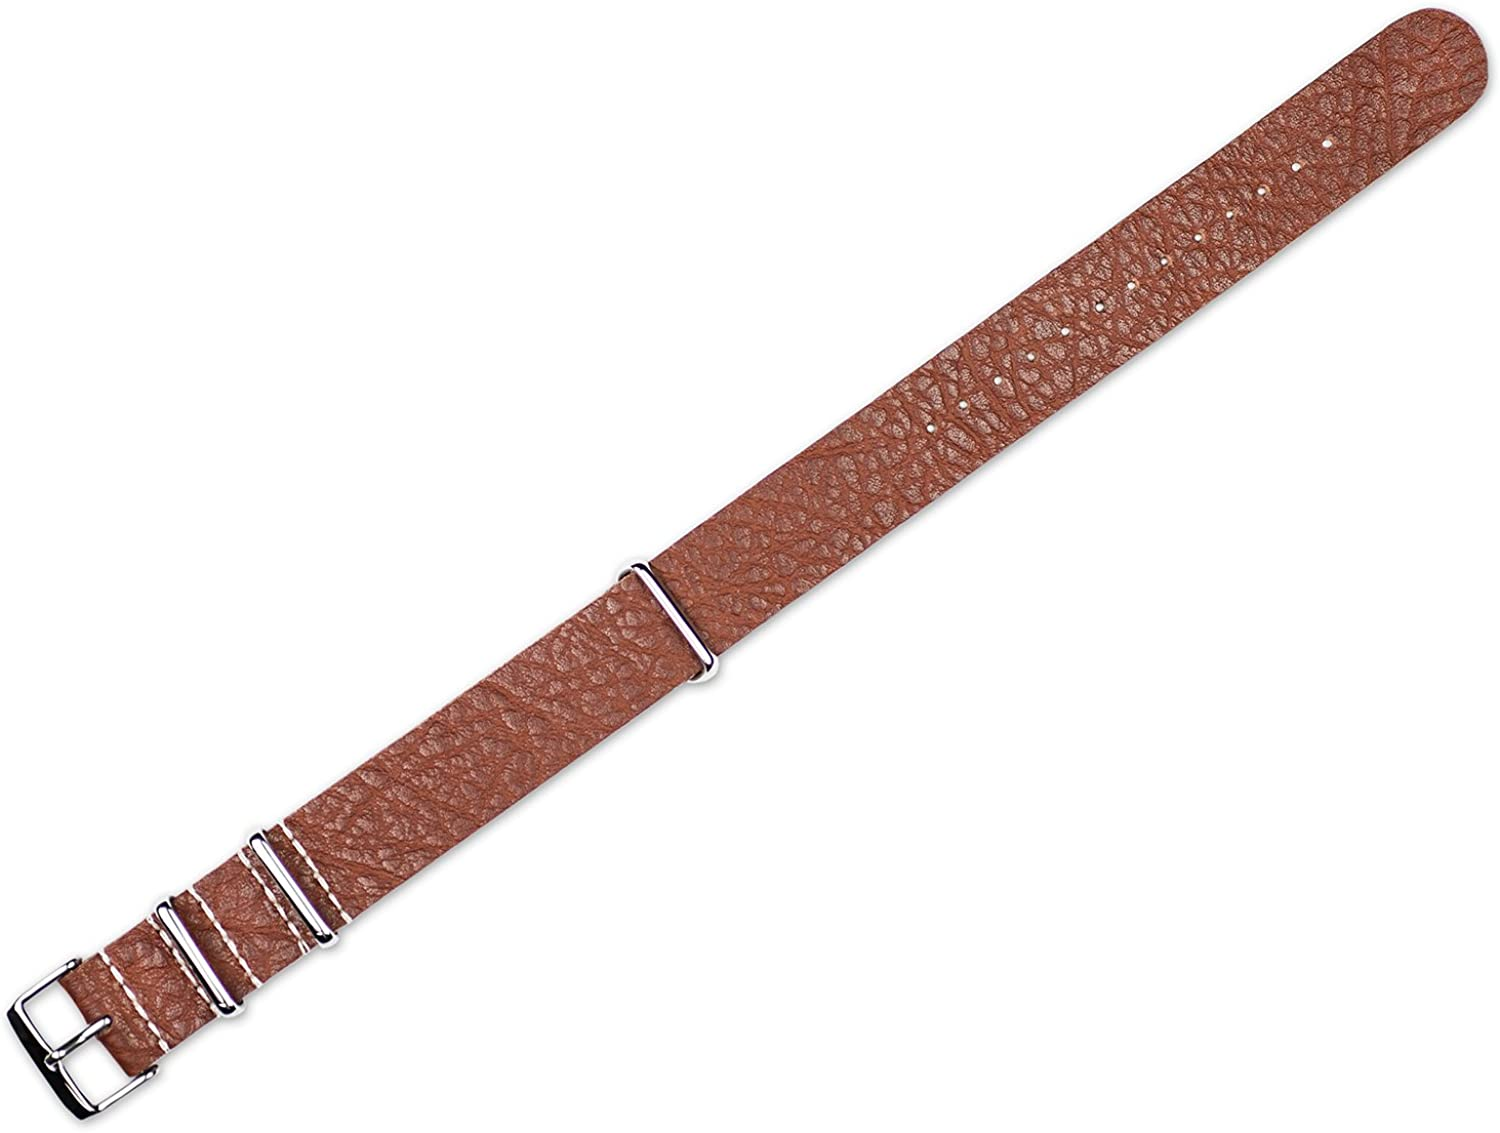 22mm Replacement Leather Watch Band - Military Style One Piece Leather - Havana Watch Strap